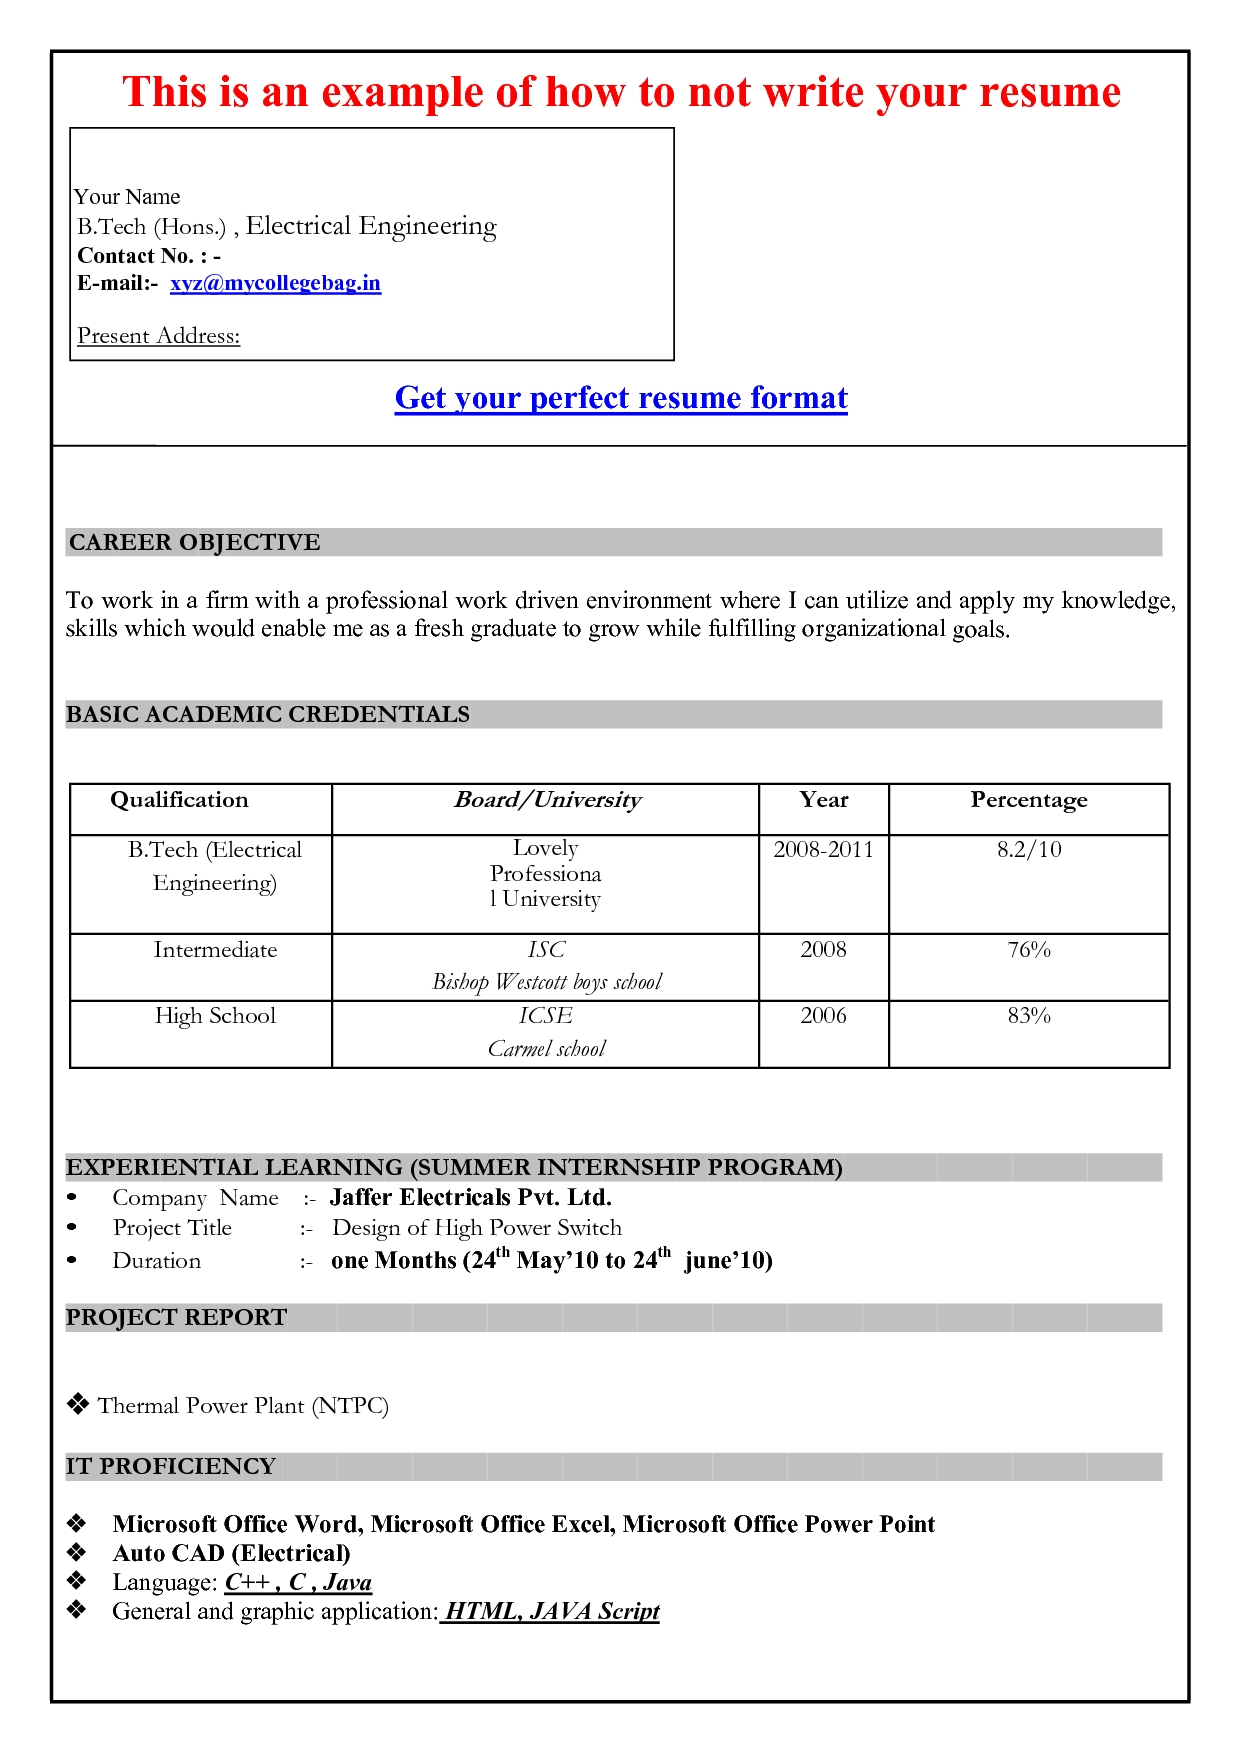 Free Resume Templates For Word 2007 Download Invoice Template Word 2007 Invoice Example